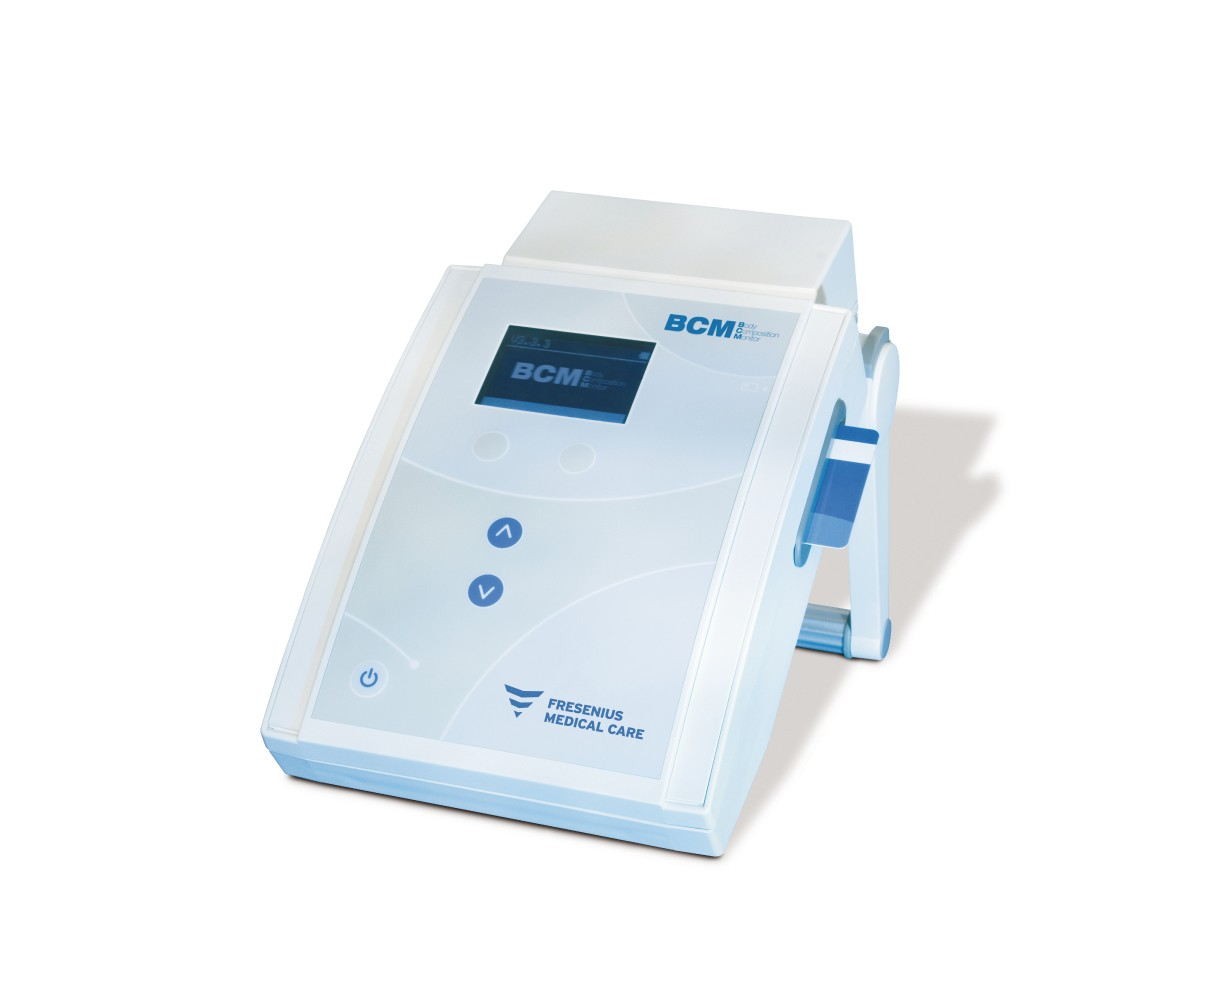 Il BCM – Body Composition Monitor